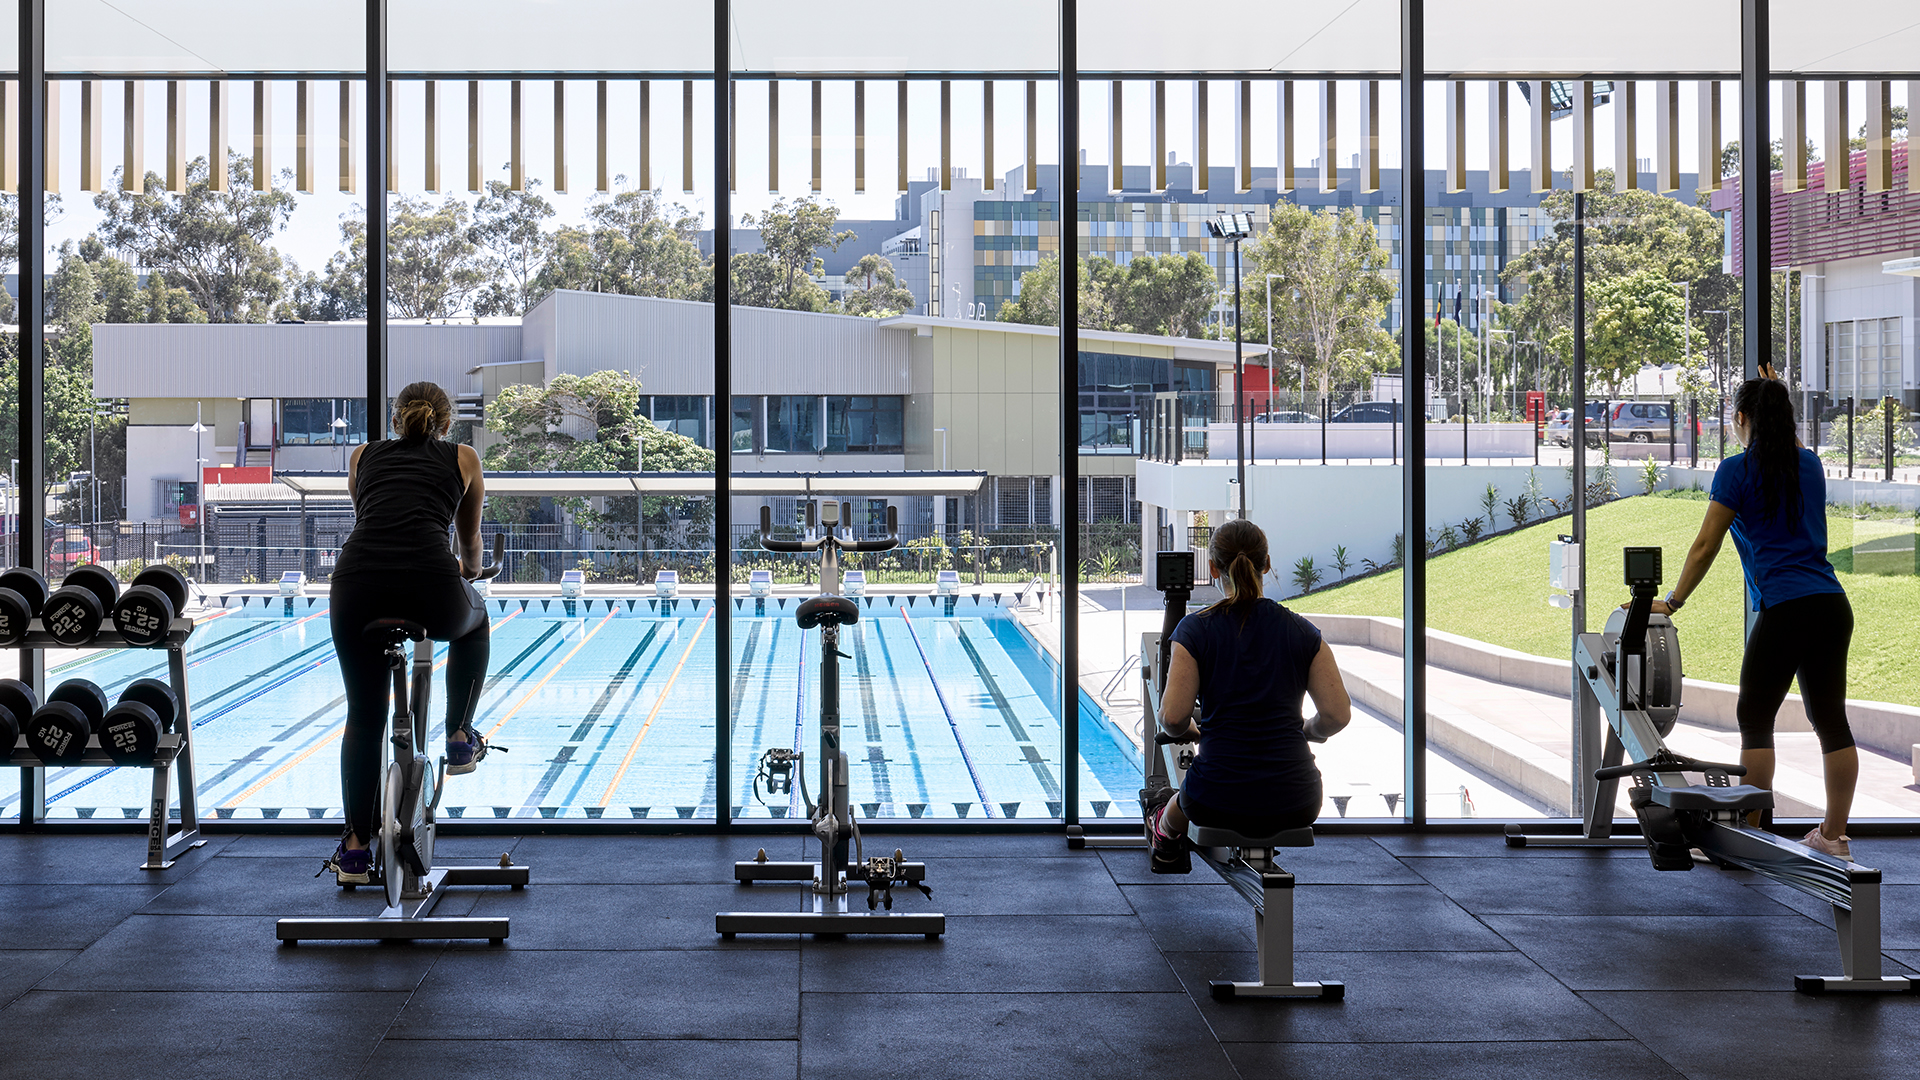 Griffith University GYM